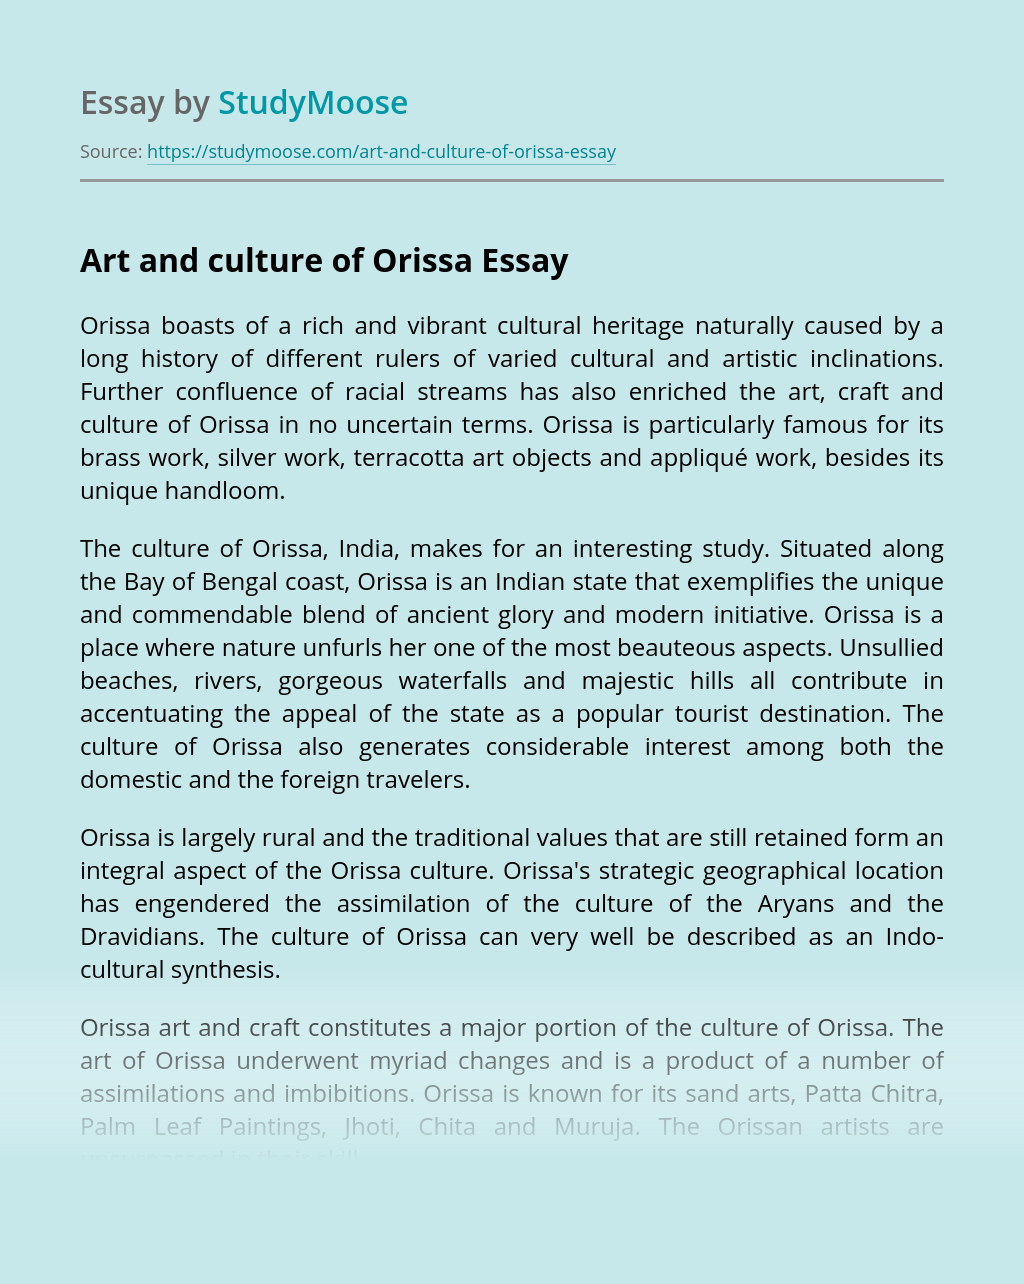 Art and culture of Orissa